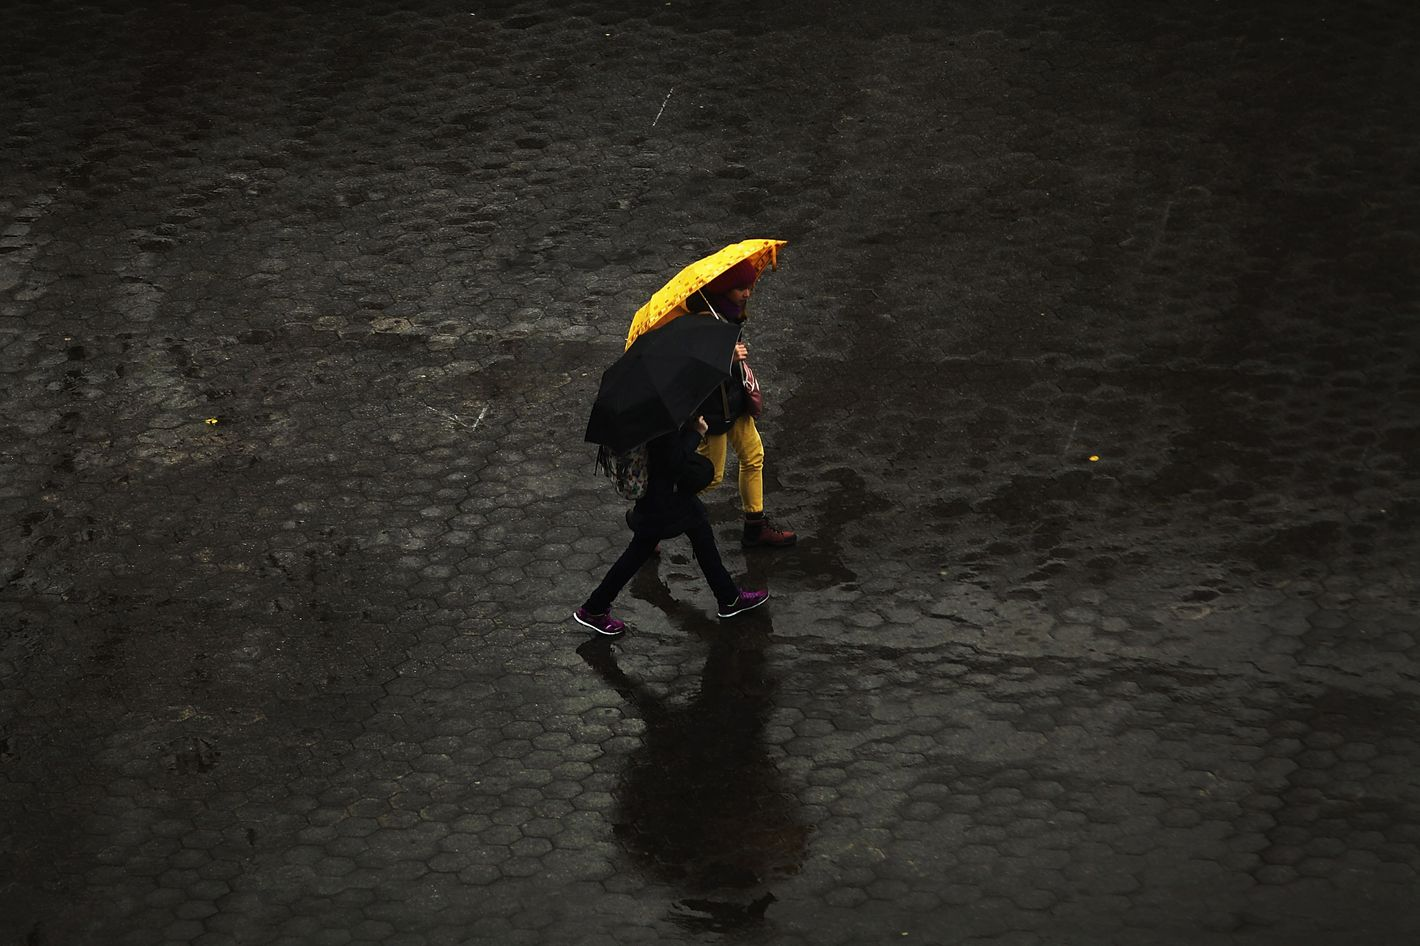 People walk in the rain through Union Square in Manhattan on November 26, 2013 in New York City. New York City is preparing for severe weather as a storm that wreaked havoc in the Southwest over the weekend is turning toward the Northeast. Heavy rains and high winds are predicted for Wednesday, Thanksgiving eve, one of the nations busiest travel days.